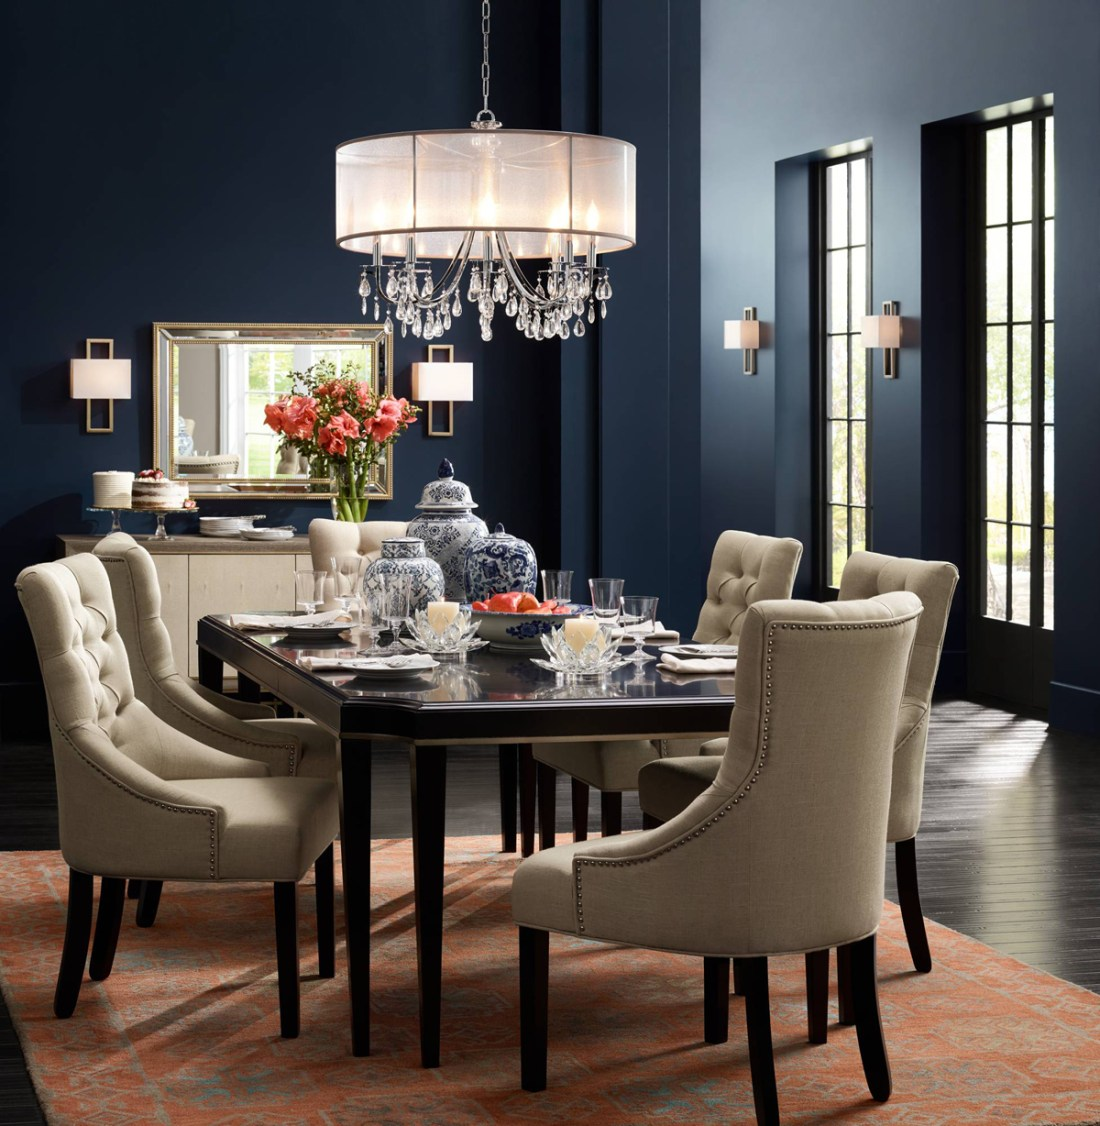 Dining Room Chandeliers Traditional: Beautiful Rooms, Stunning Interiors & Fabulous Home Decor